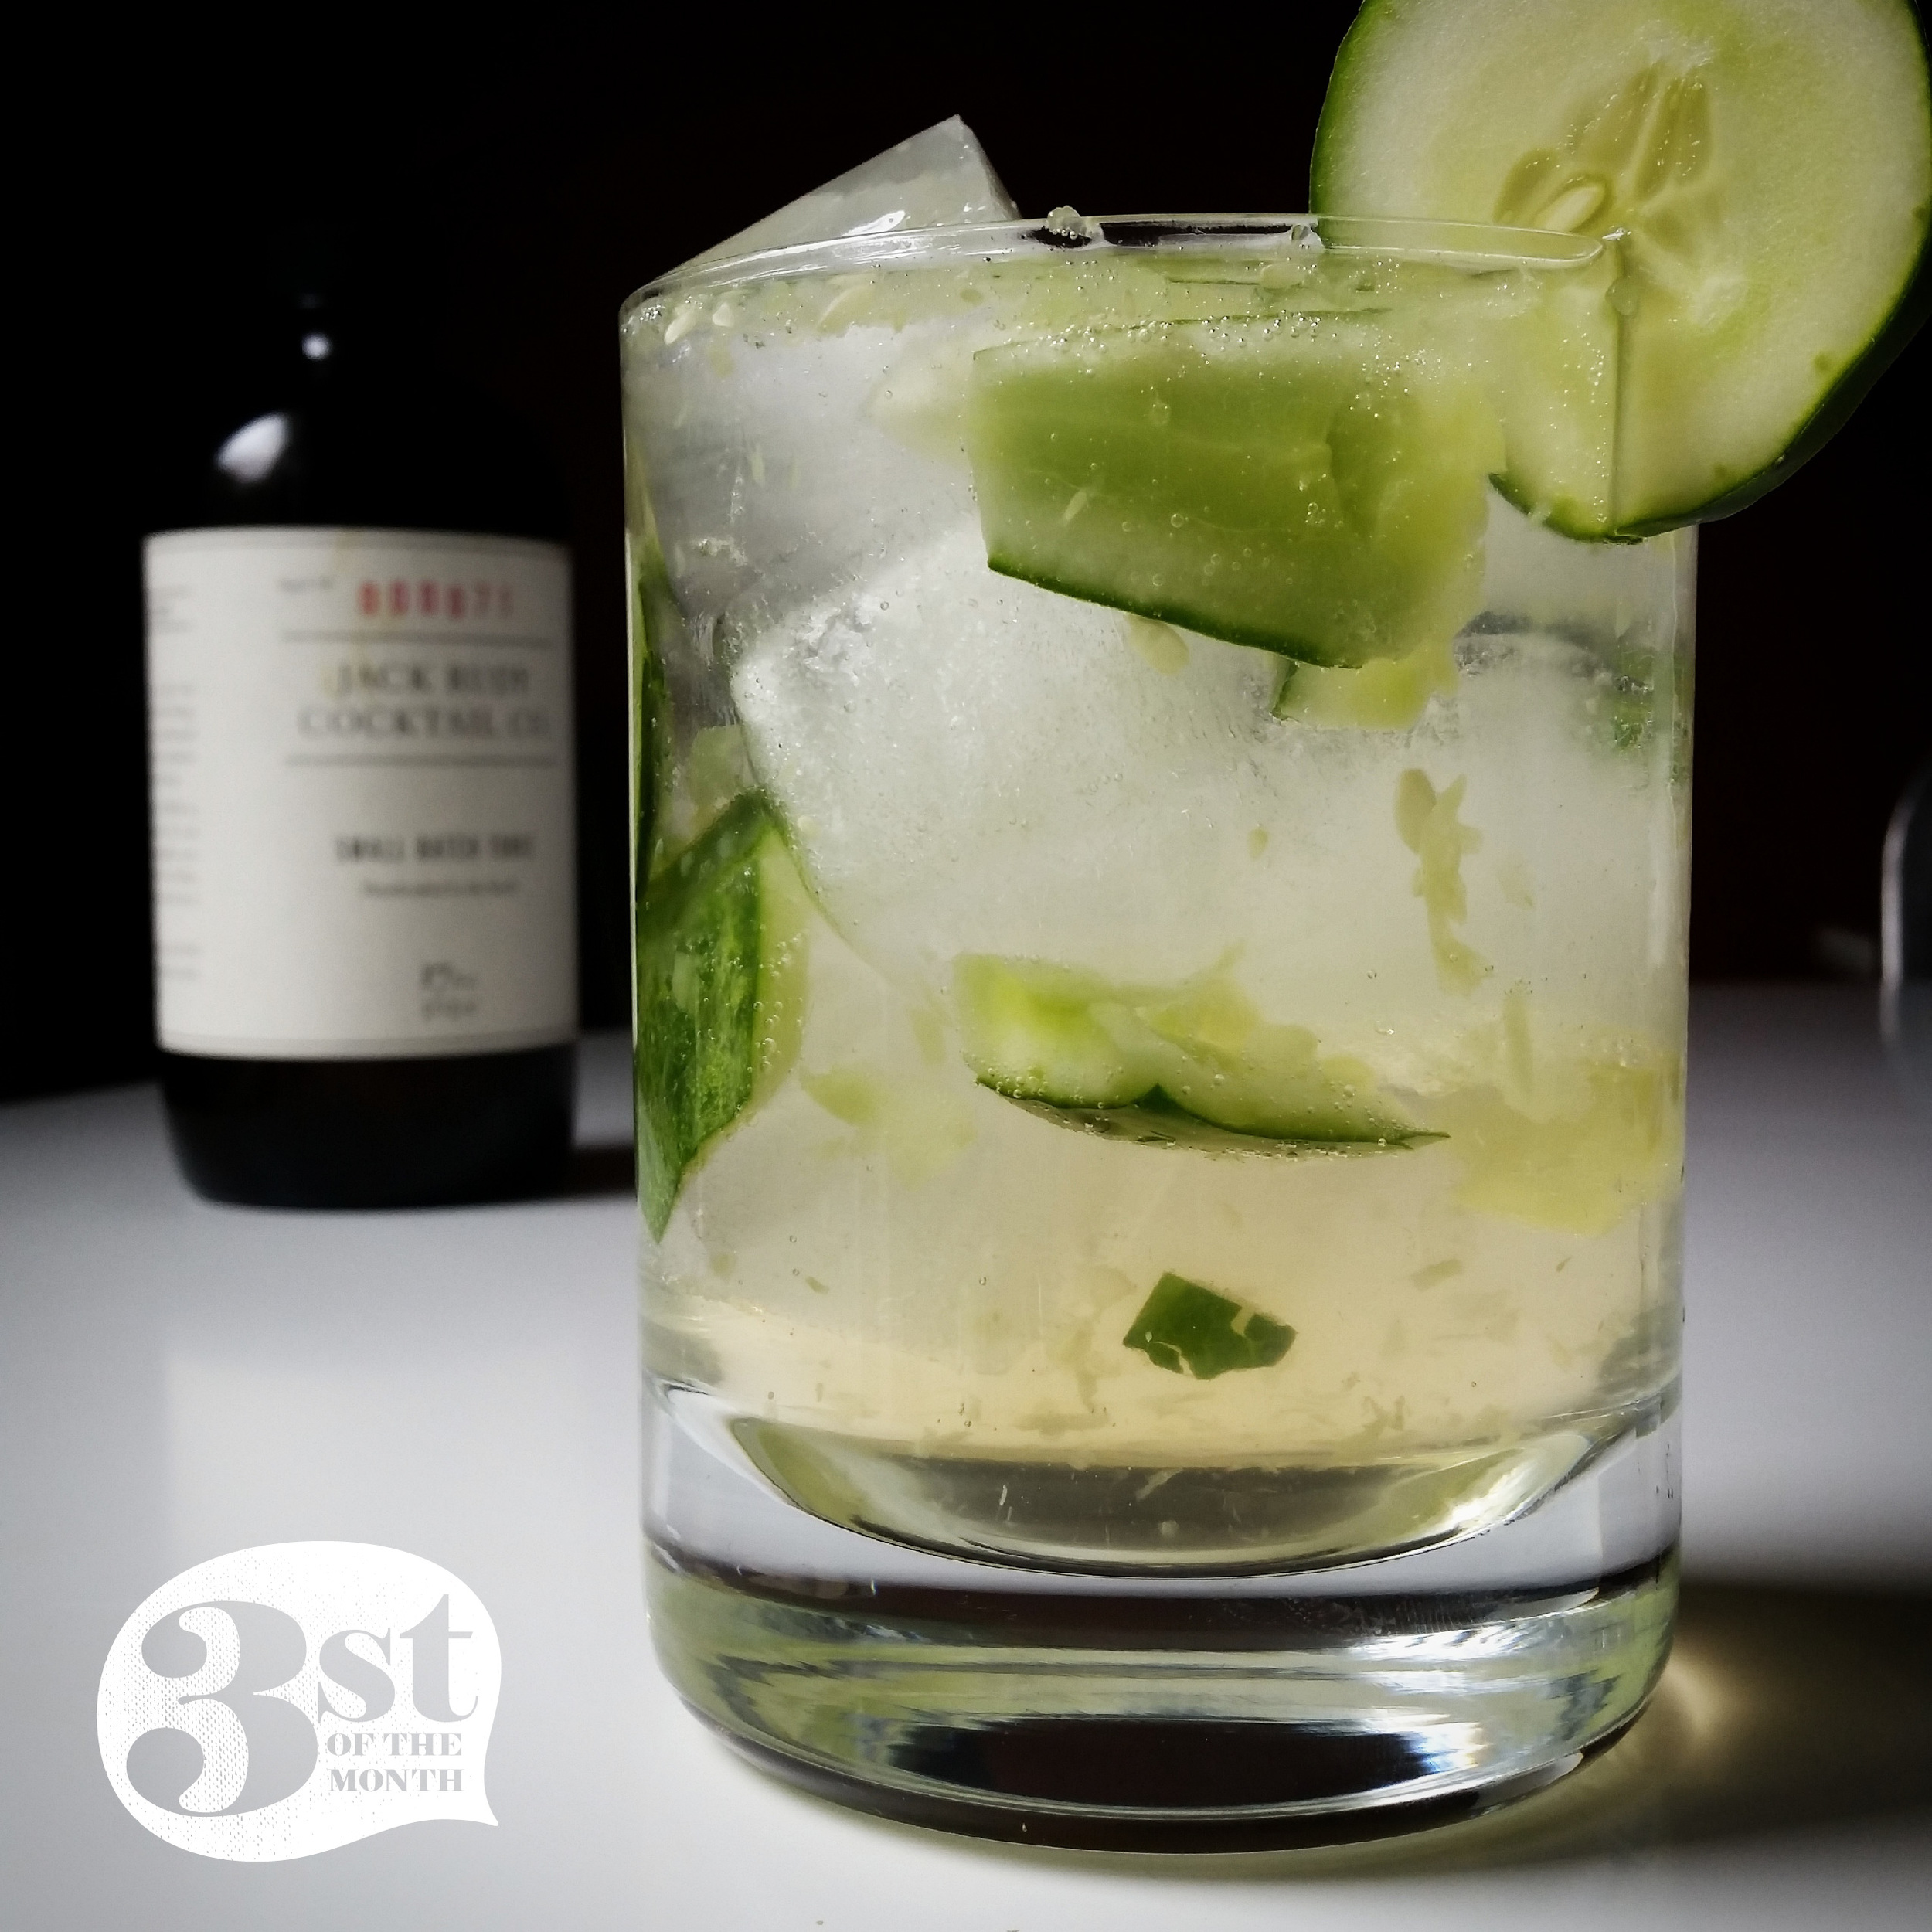 Deliciously-simple Cucumber Tonic cocktail from 3st of the Month